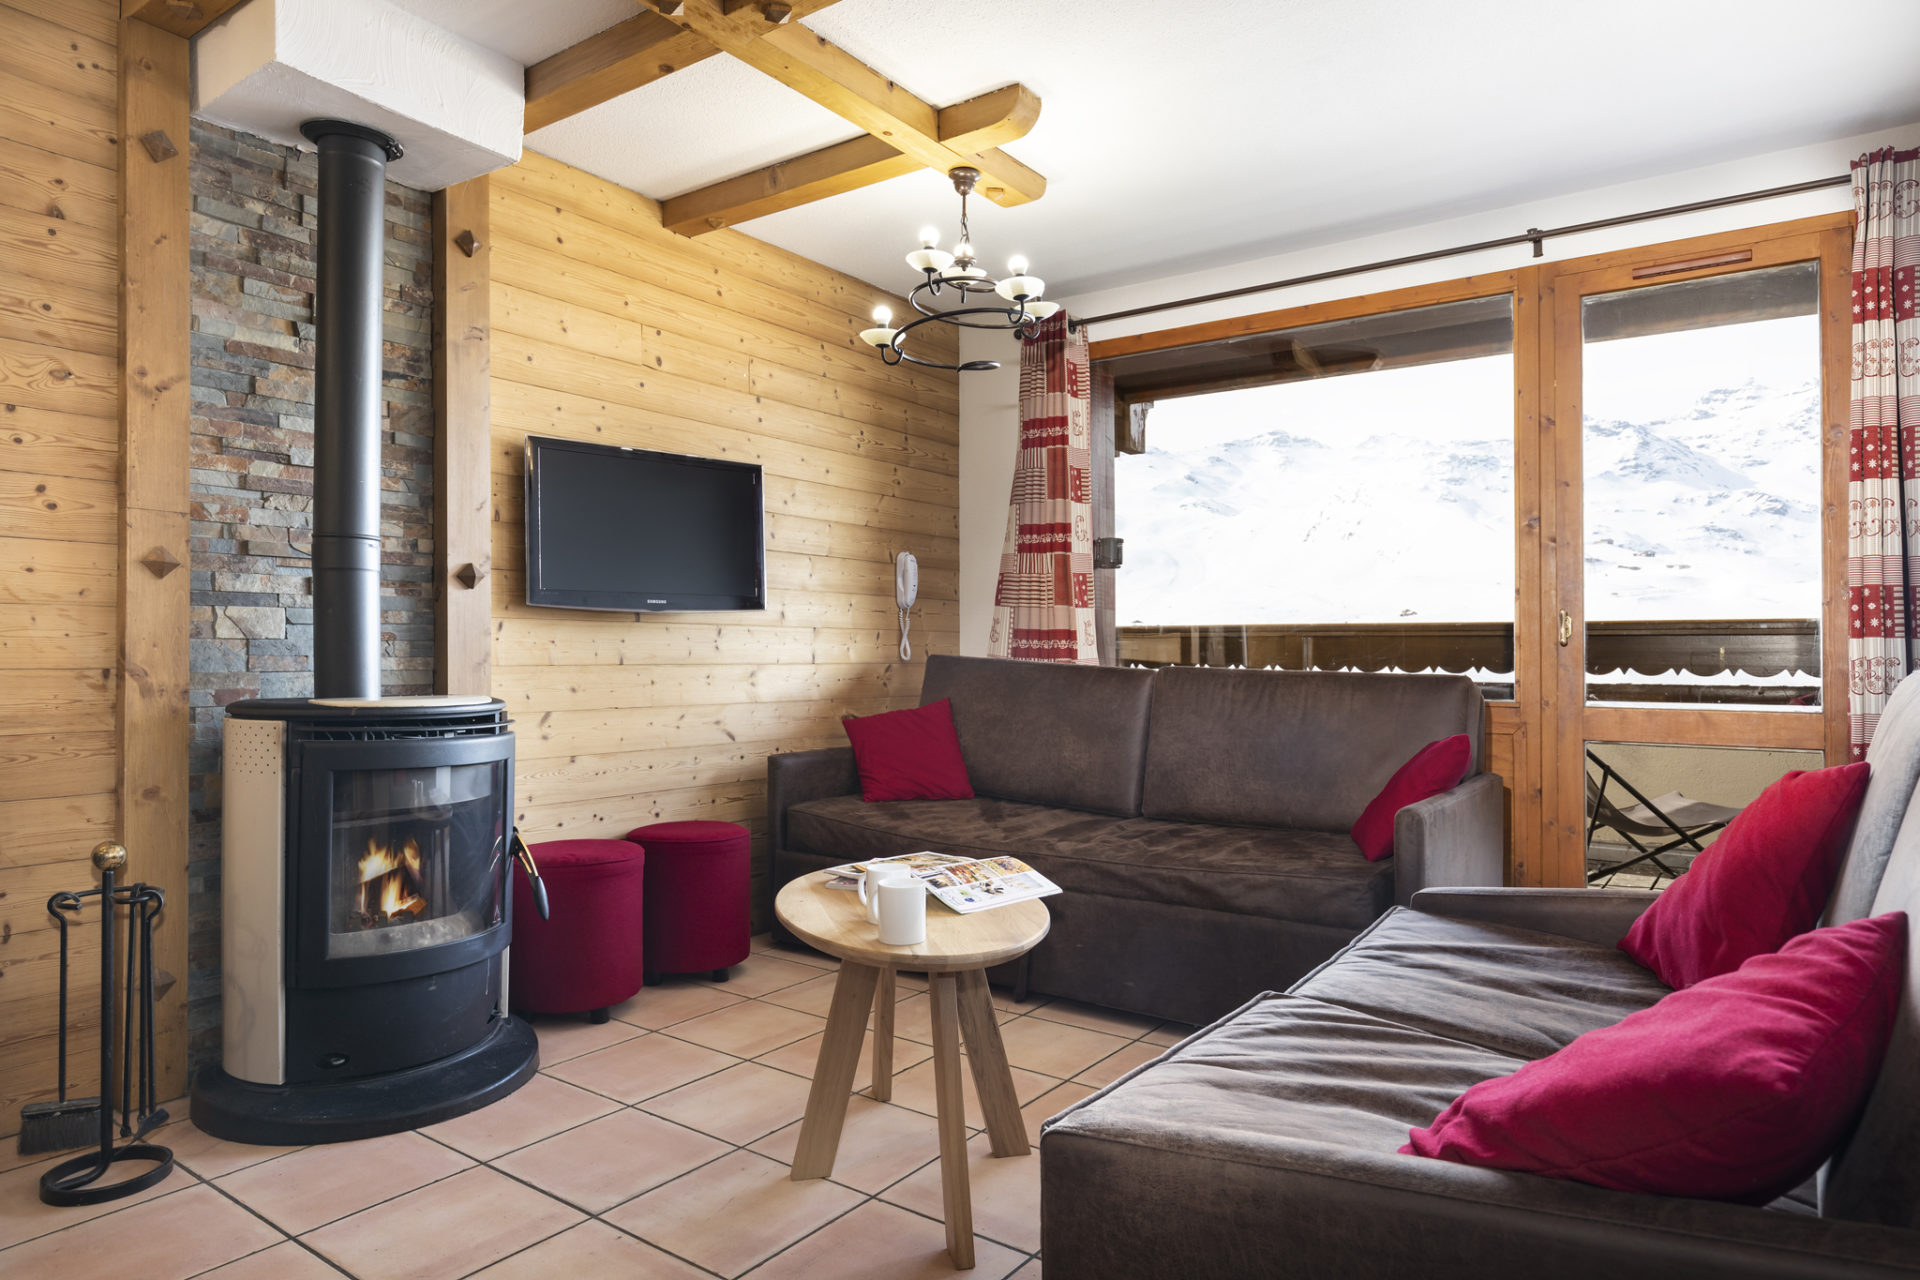 Image of the living area in an apartment in Les Balcons de Val Thorens featuring sofas, TV and a wood burner